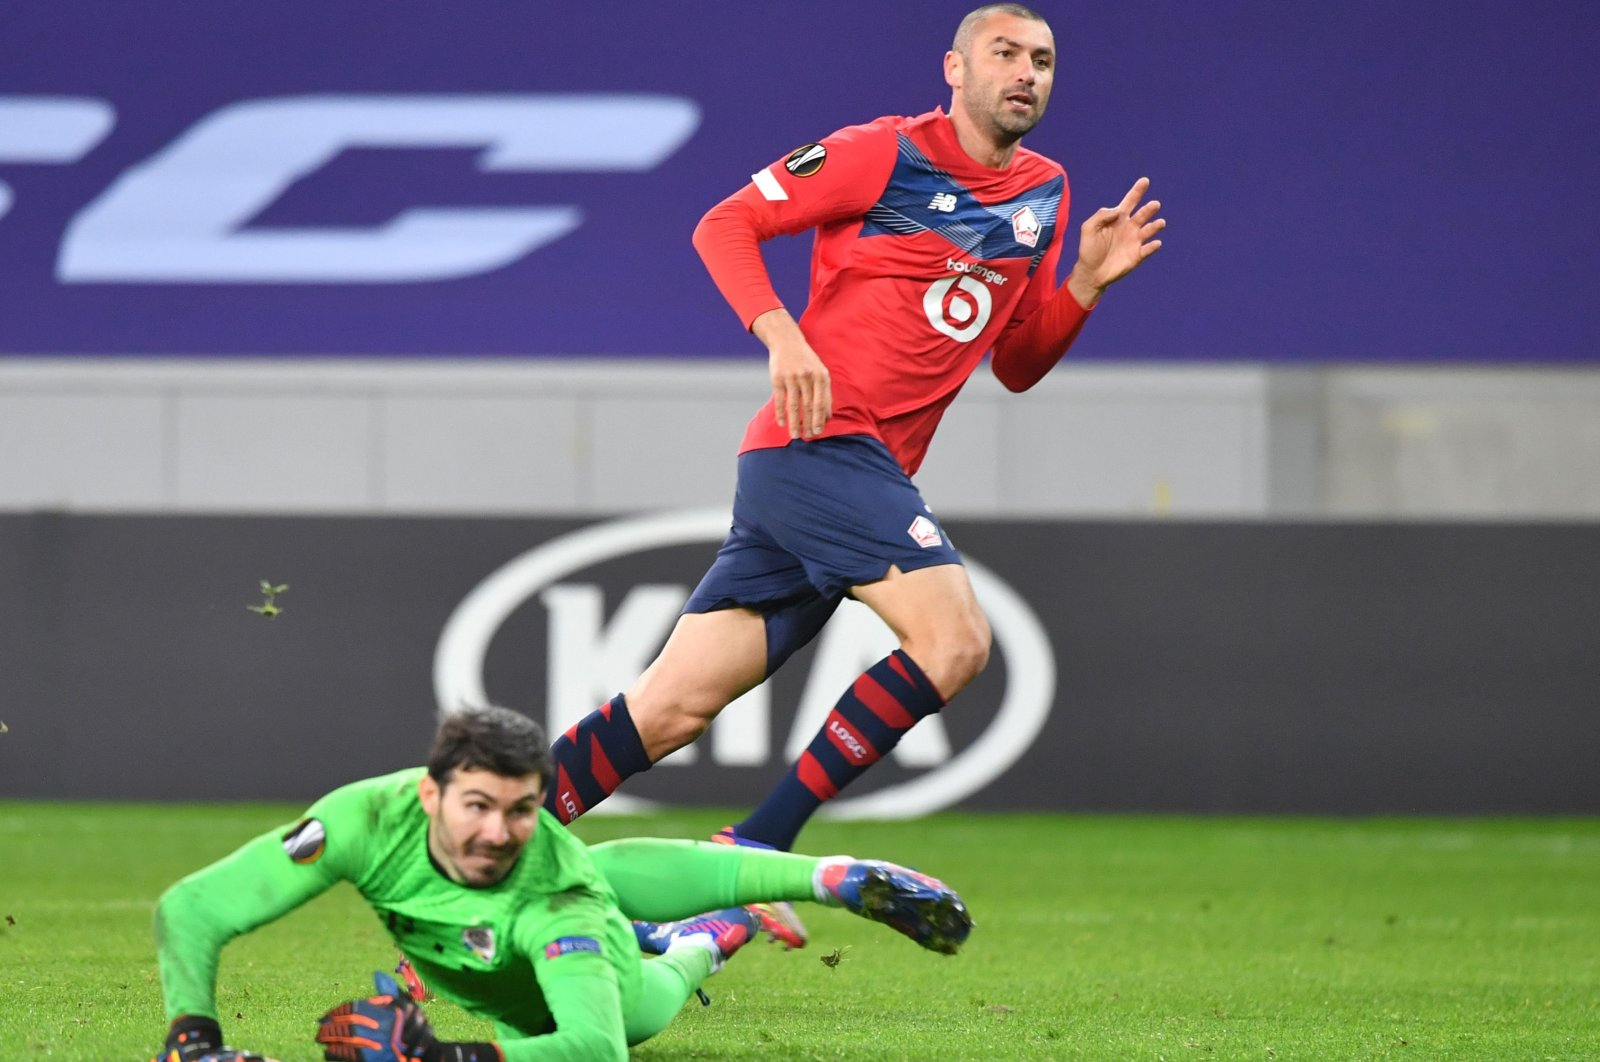 Lille forward Burak Yılmaz (R) watches his shot as he scores a goal during the UEFA Europa League Group H football match between Lille LOSC and Sparta Prague at the Pierre-Mauroy stadium in Villeneuve-d'Ascq, on the outskirts of Lille, northern France, Dec. 3, 2020. (AFP Photo)